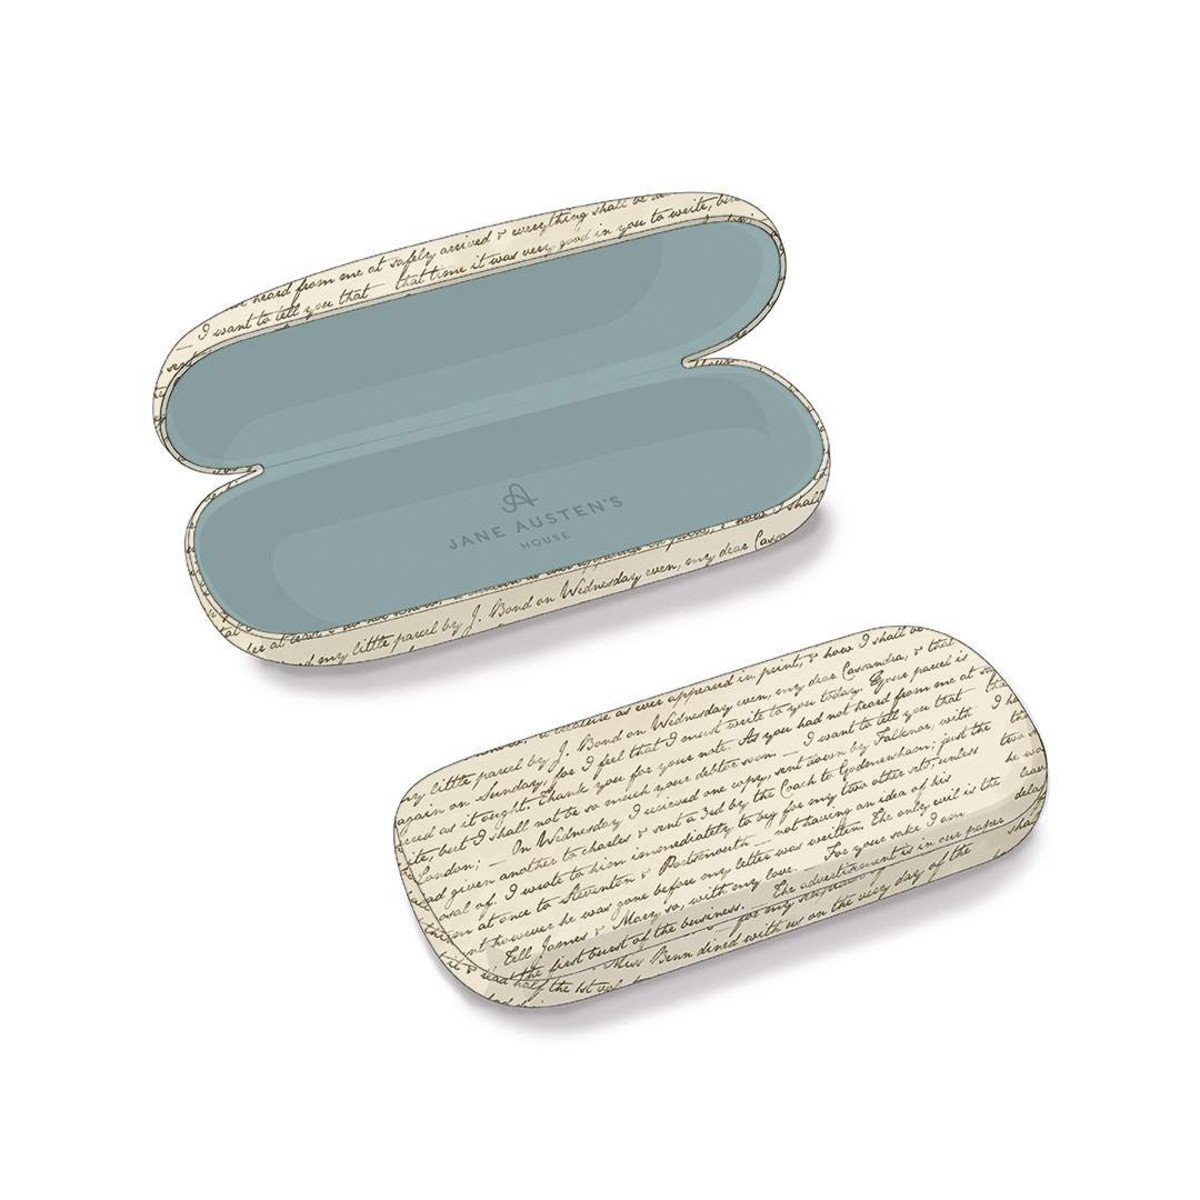 Jane Austen Eye Glasses Hard Case